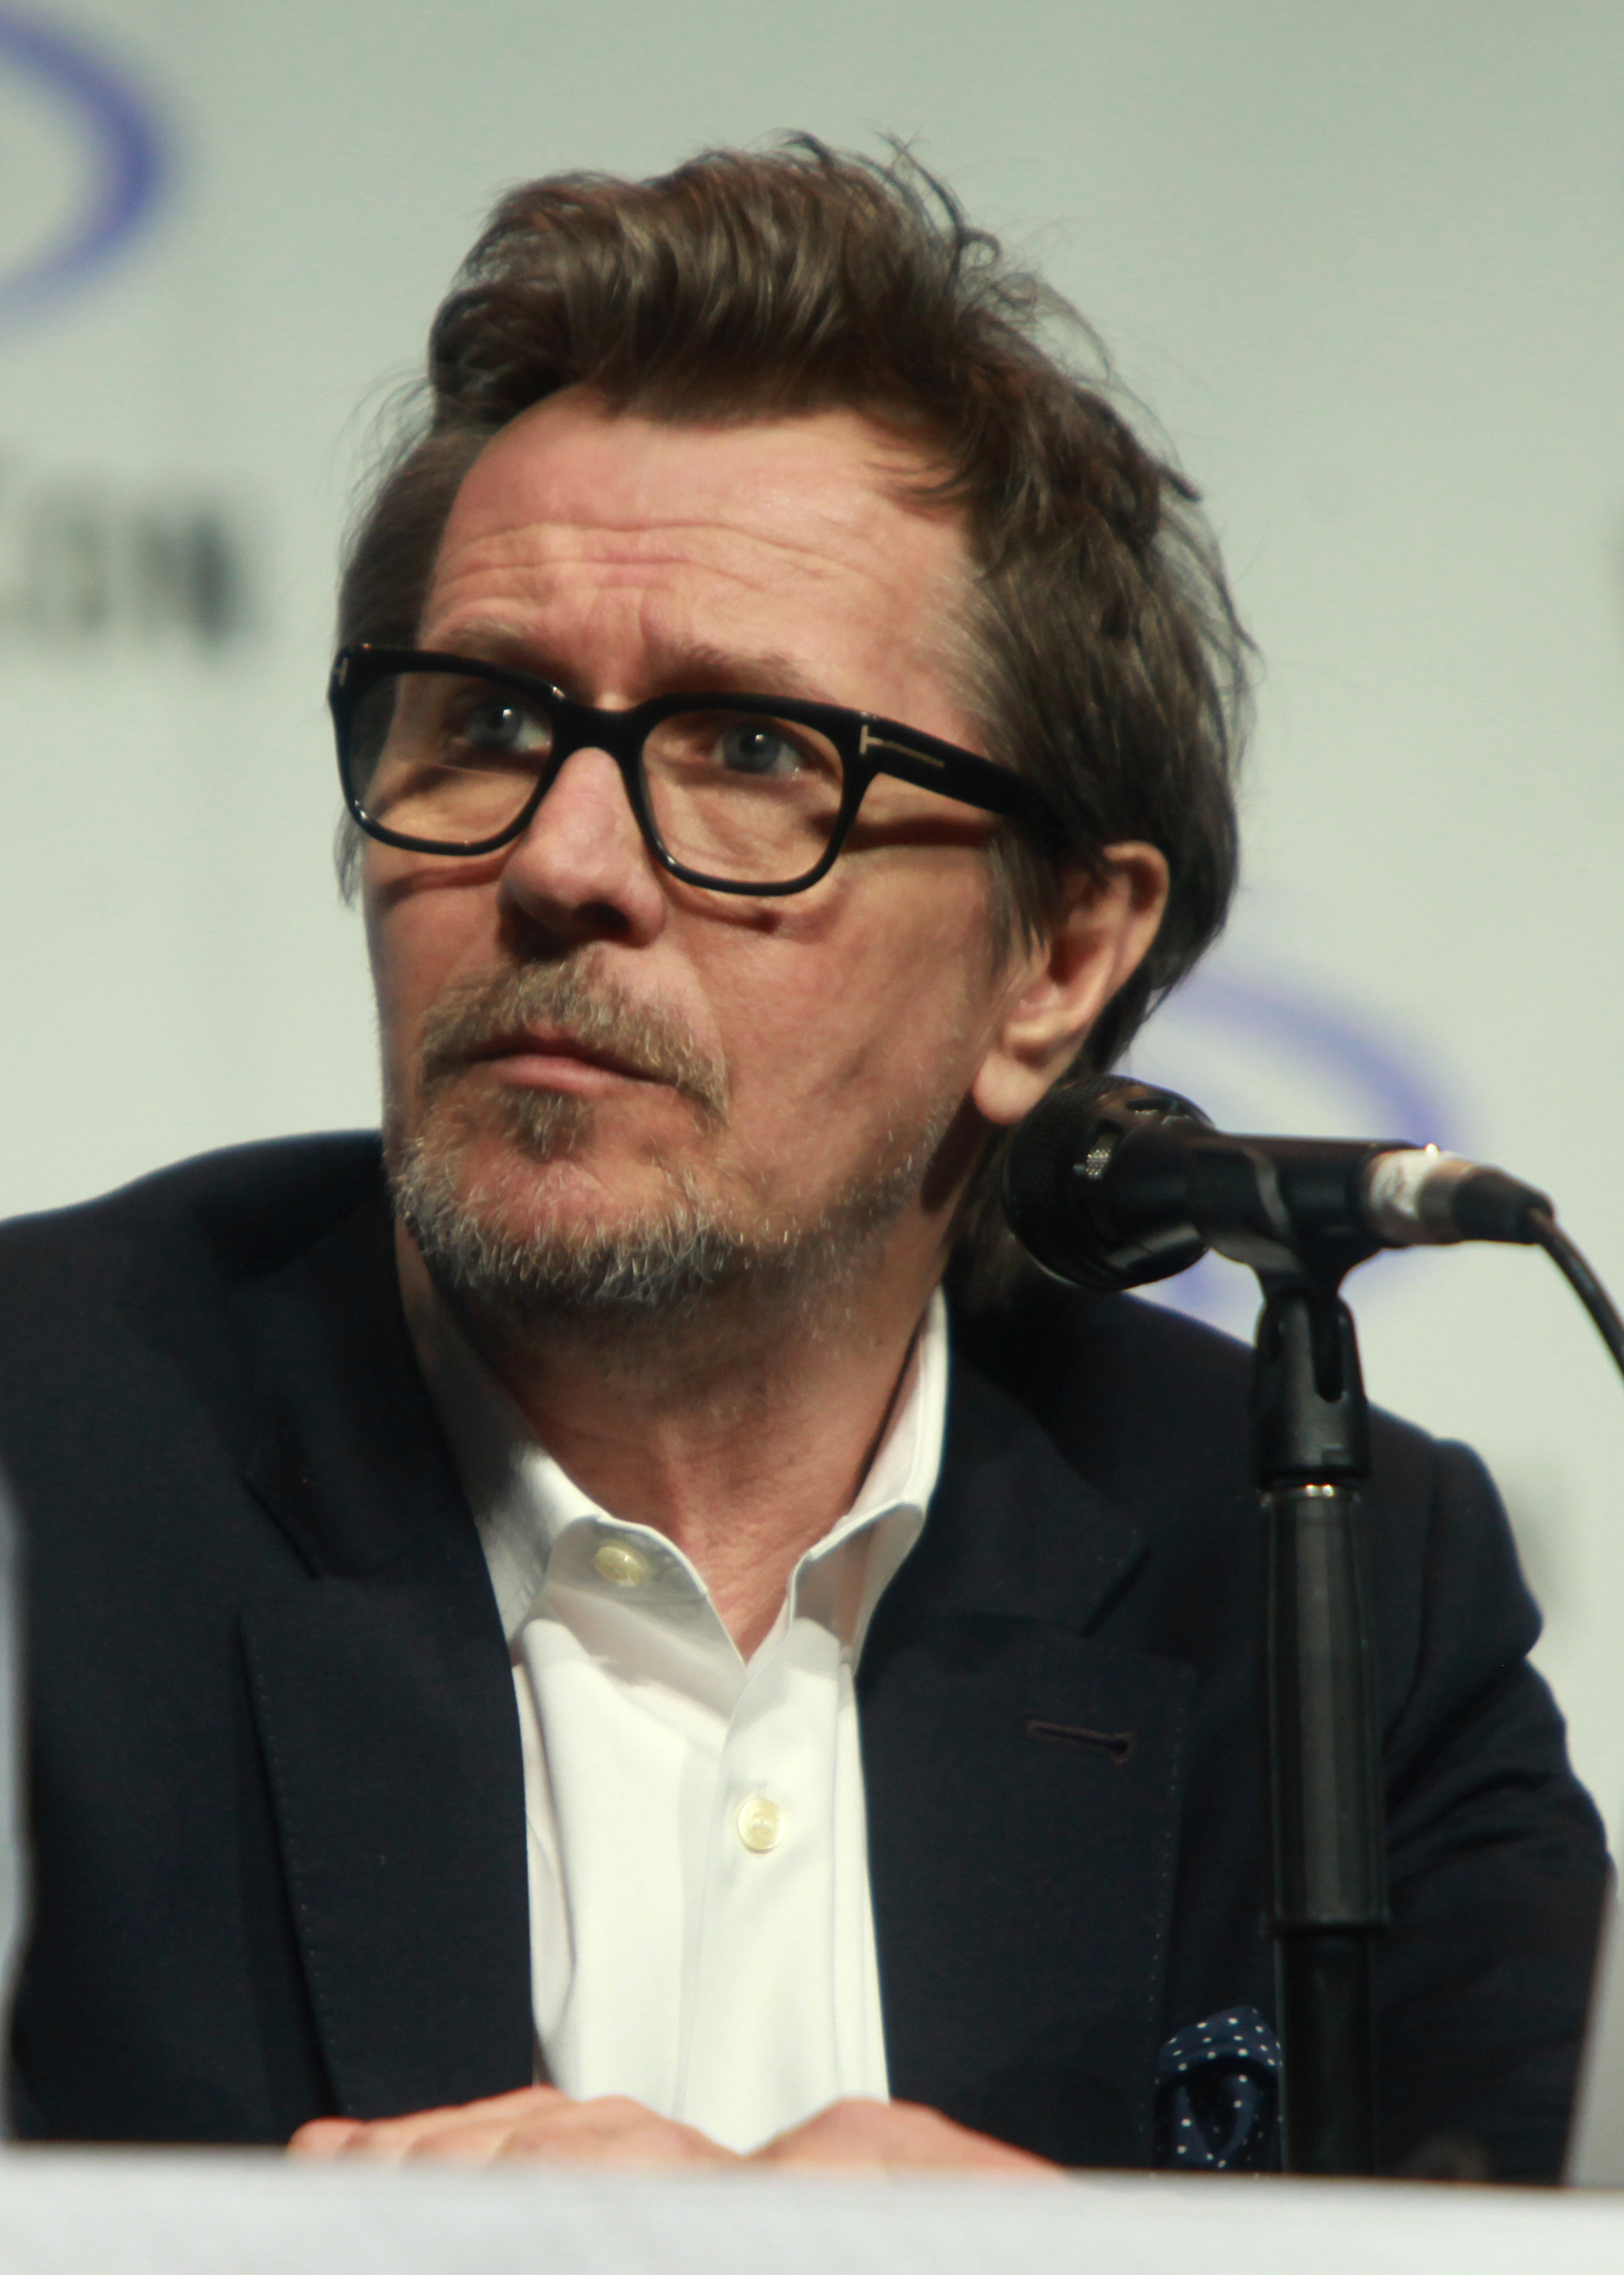 The 61-year old son of father Leonard Bertram Oldman and mother Kathleen Oldman Gary Oldman in 2019 photo. Gary Oldman earned a  million dollar salary - leaving the net worth at 40 million in 2019